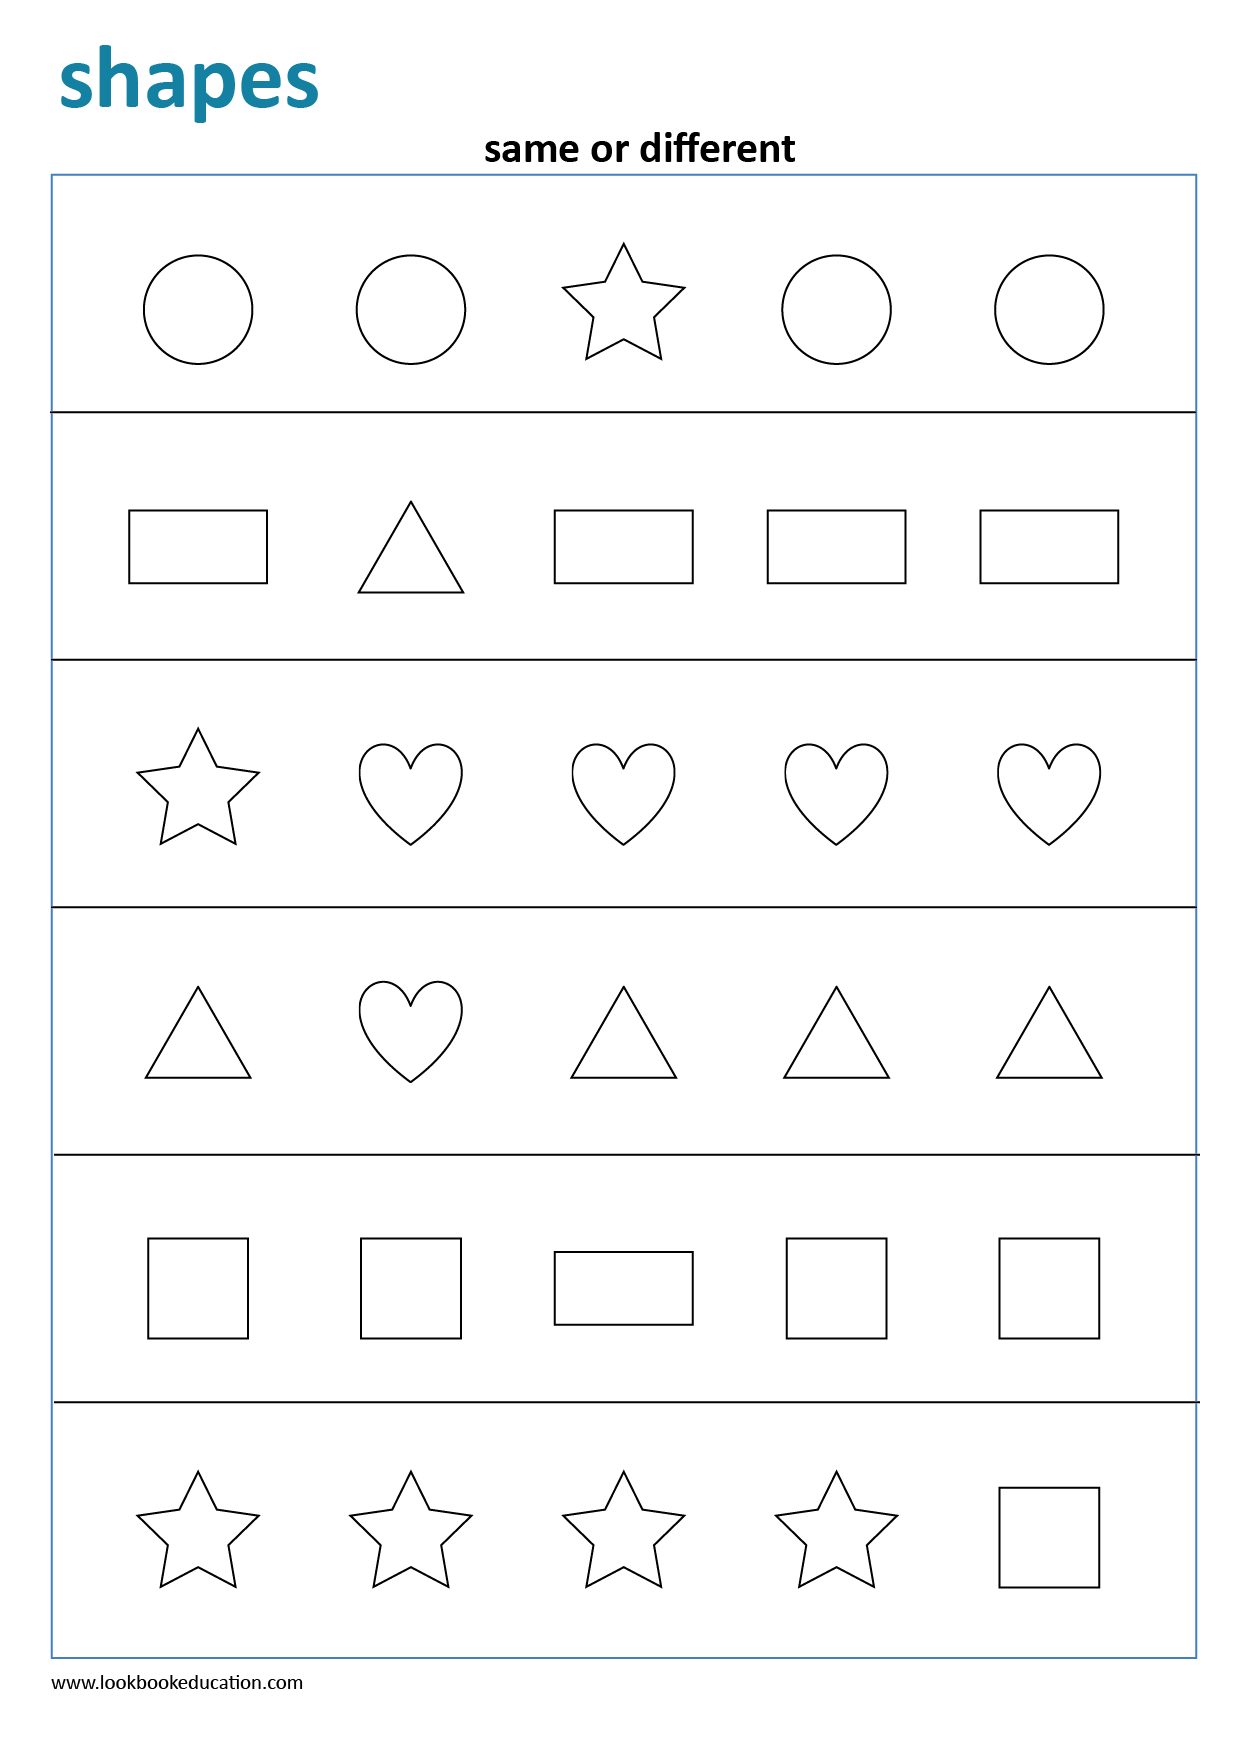 Worksheet Same Or Different Shapes